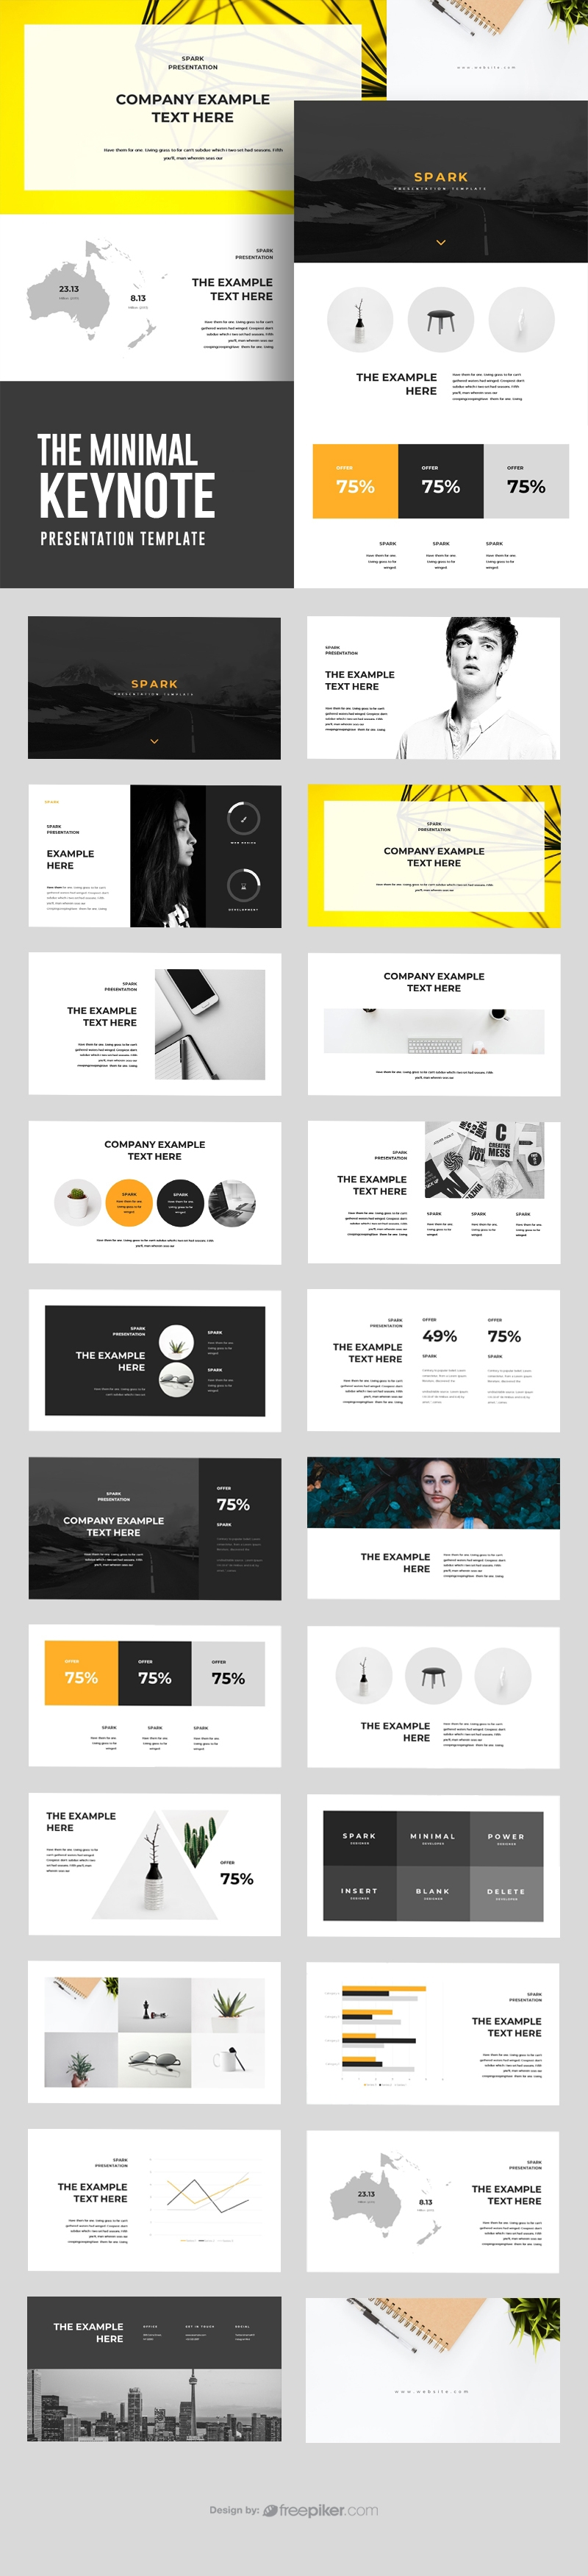 The Minimal Keynote Template